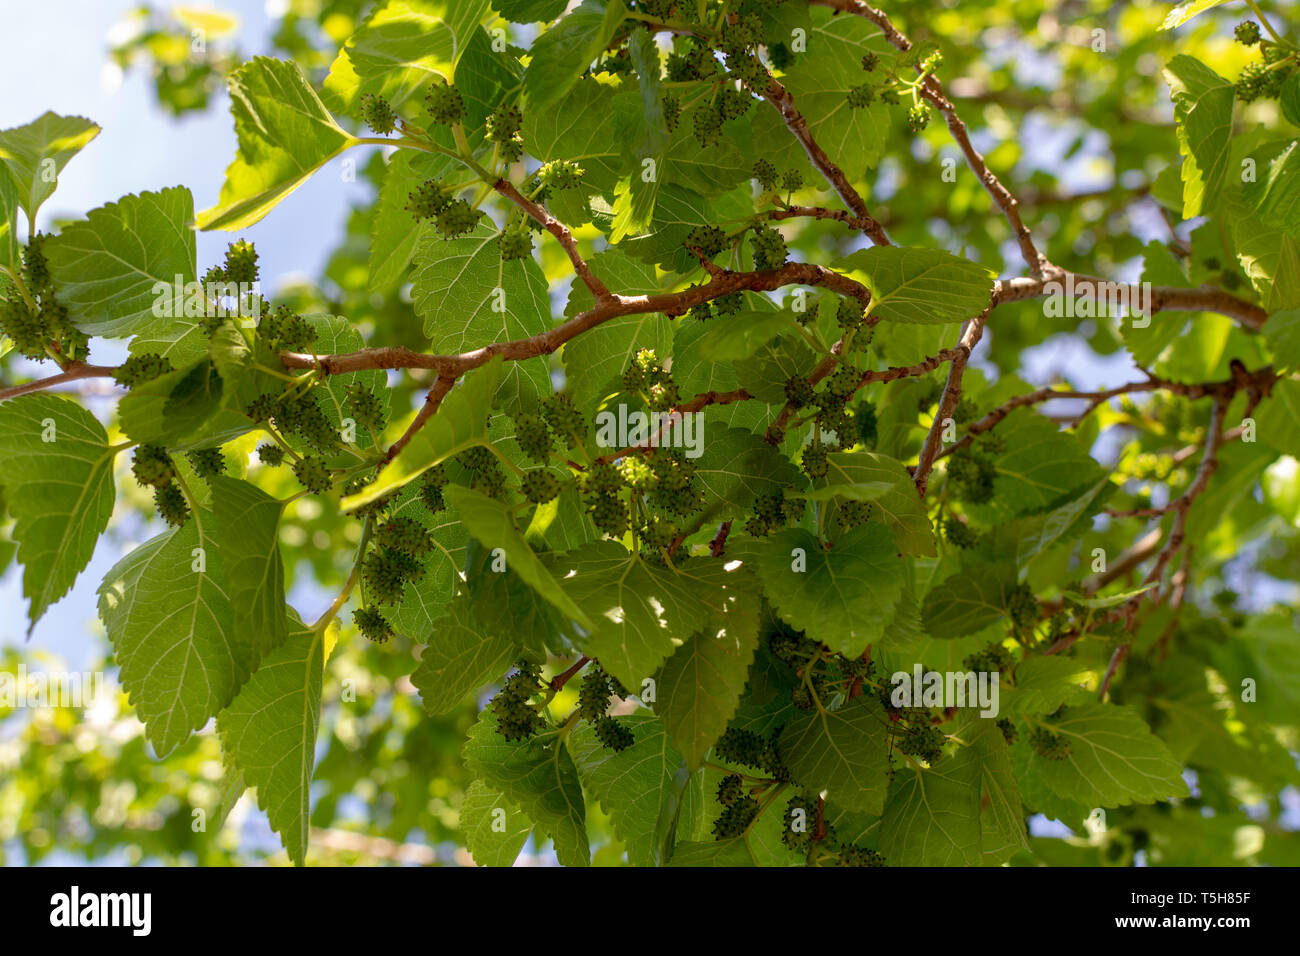 Young green unripe mulberry berries riping on tree in spring Stock Photo